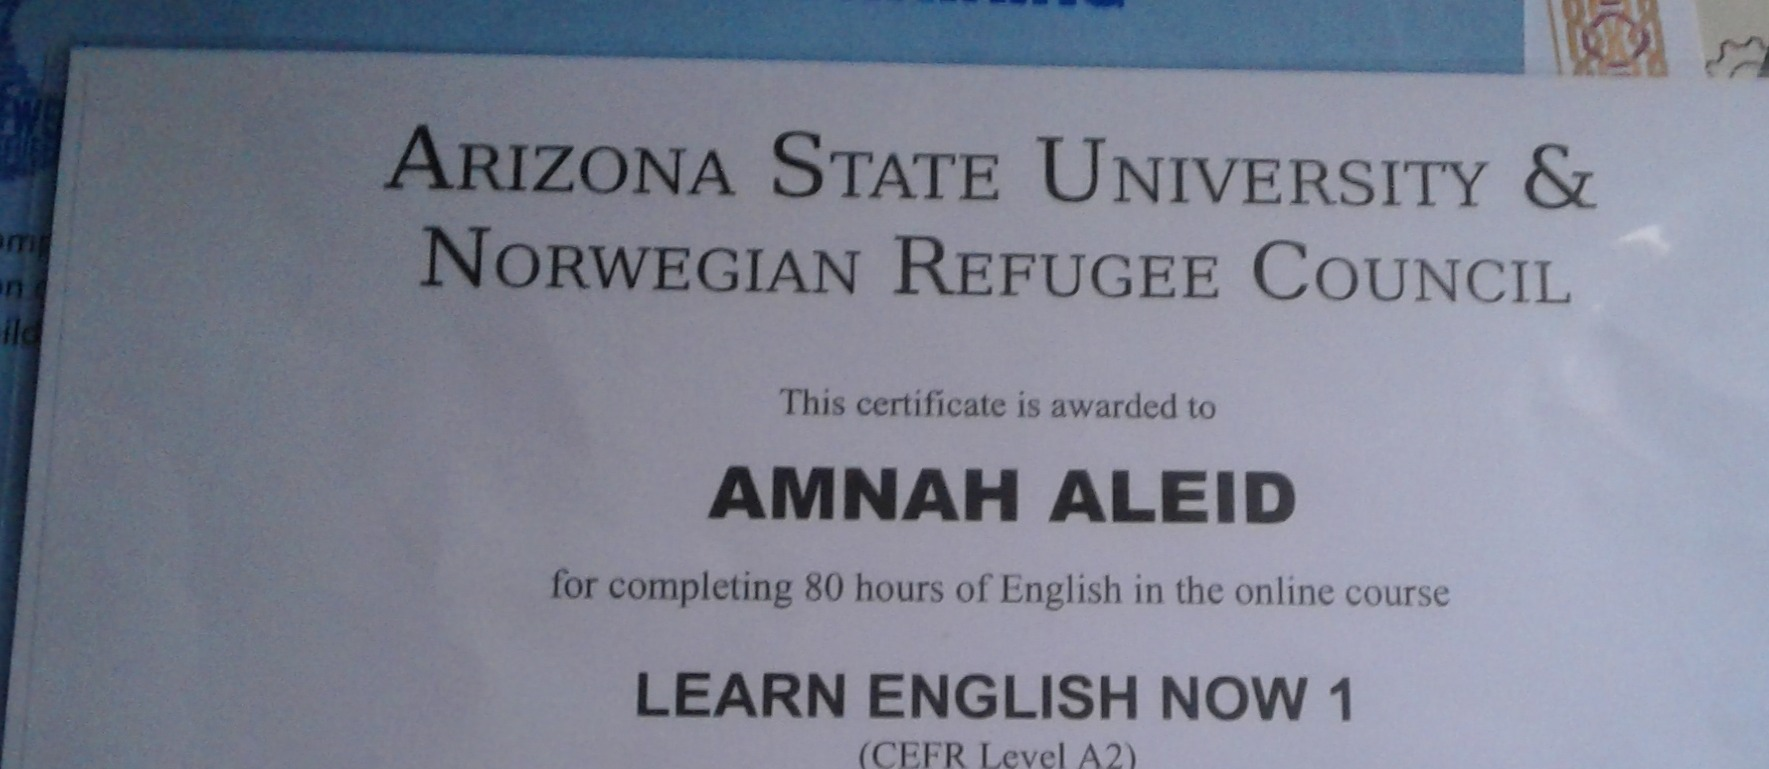 I participated in this course to become more flexible with English